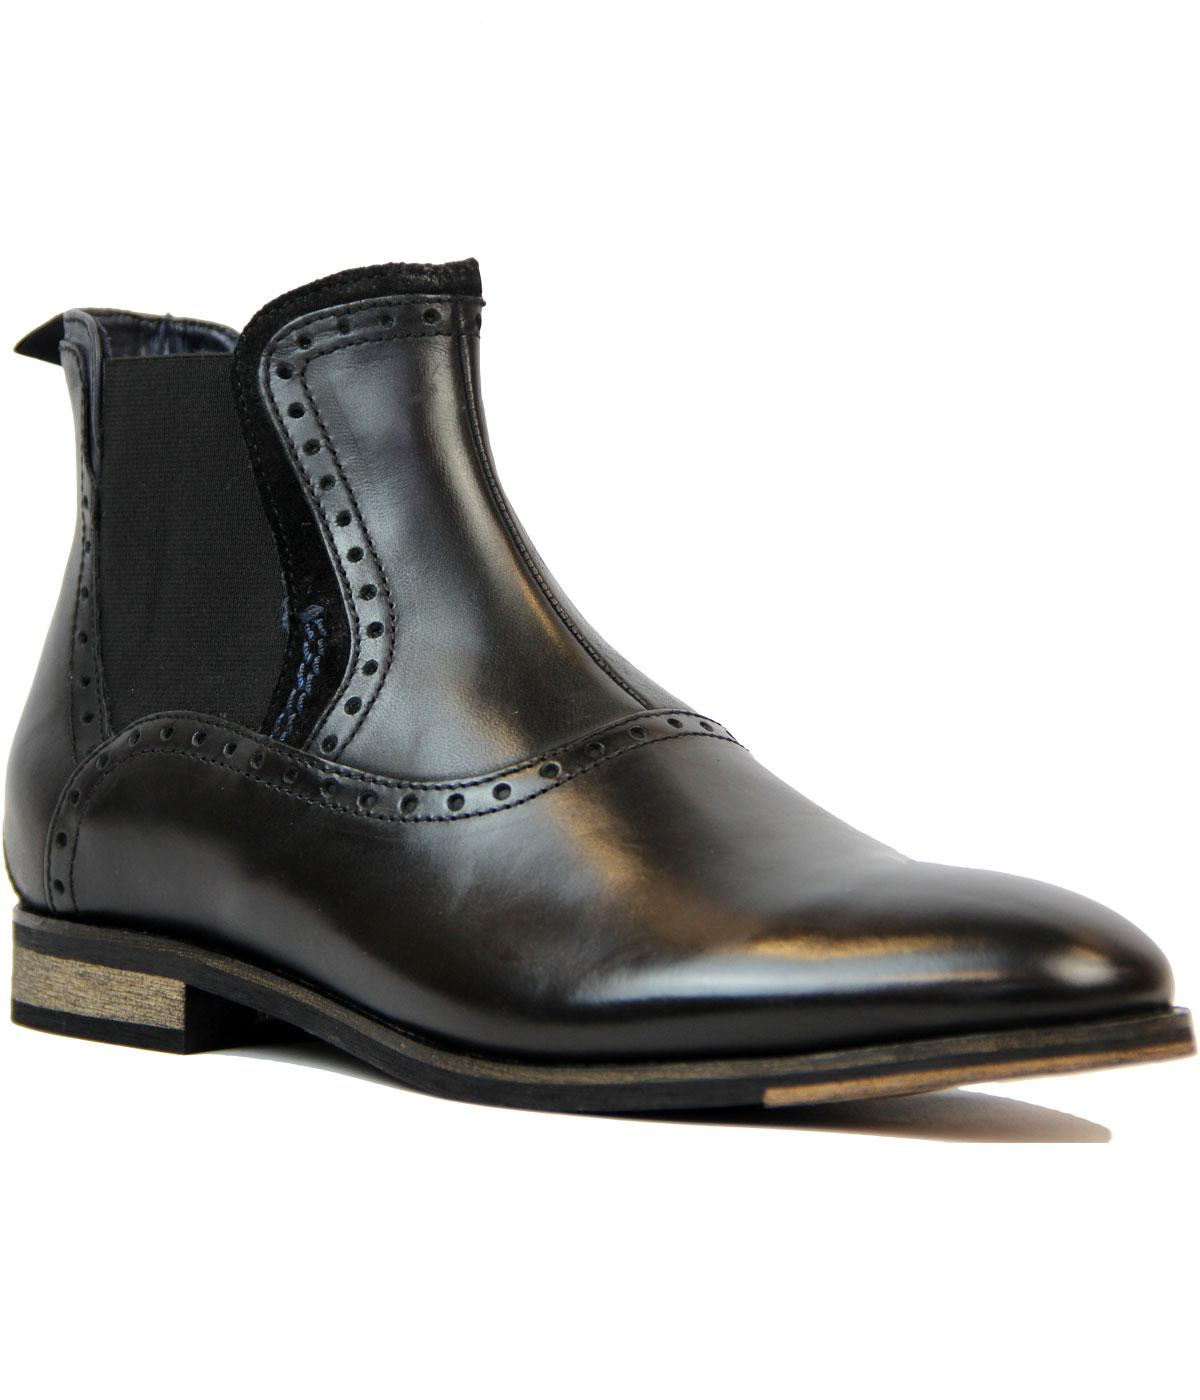 Baldwin GOODWIN SMITH Indie Retro Cheslea Boots